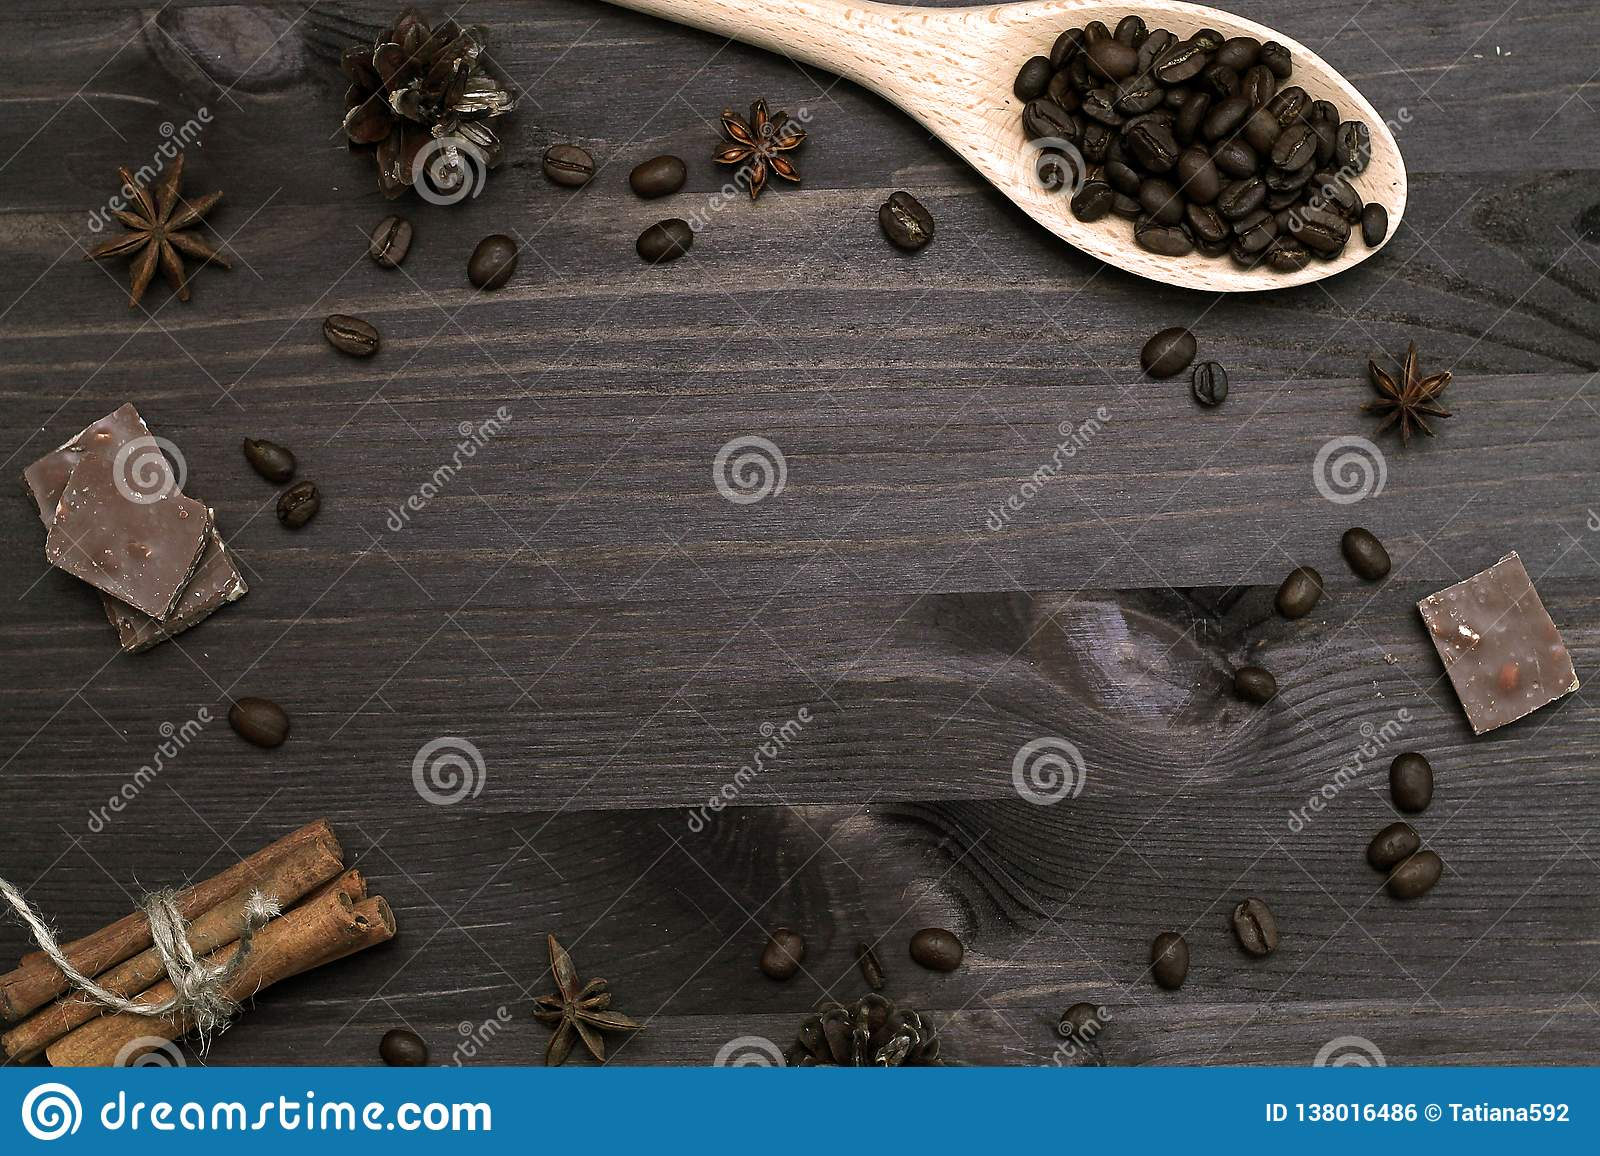 Coffee beans and cinnamon sticks on wooden background